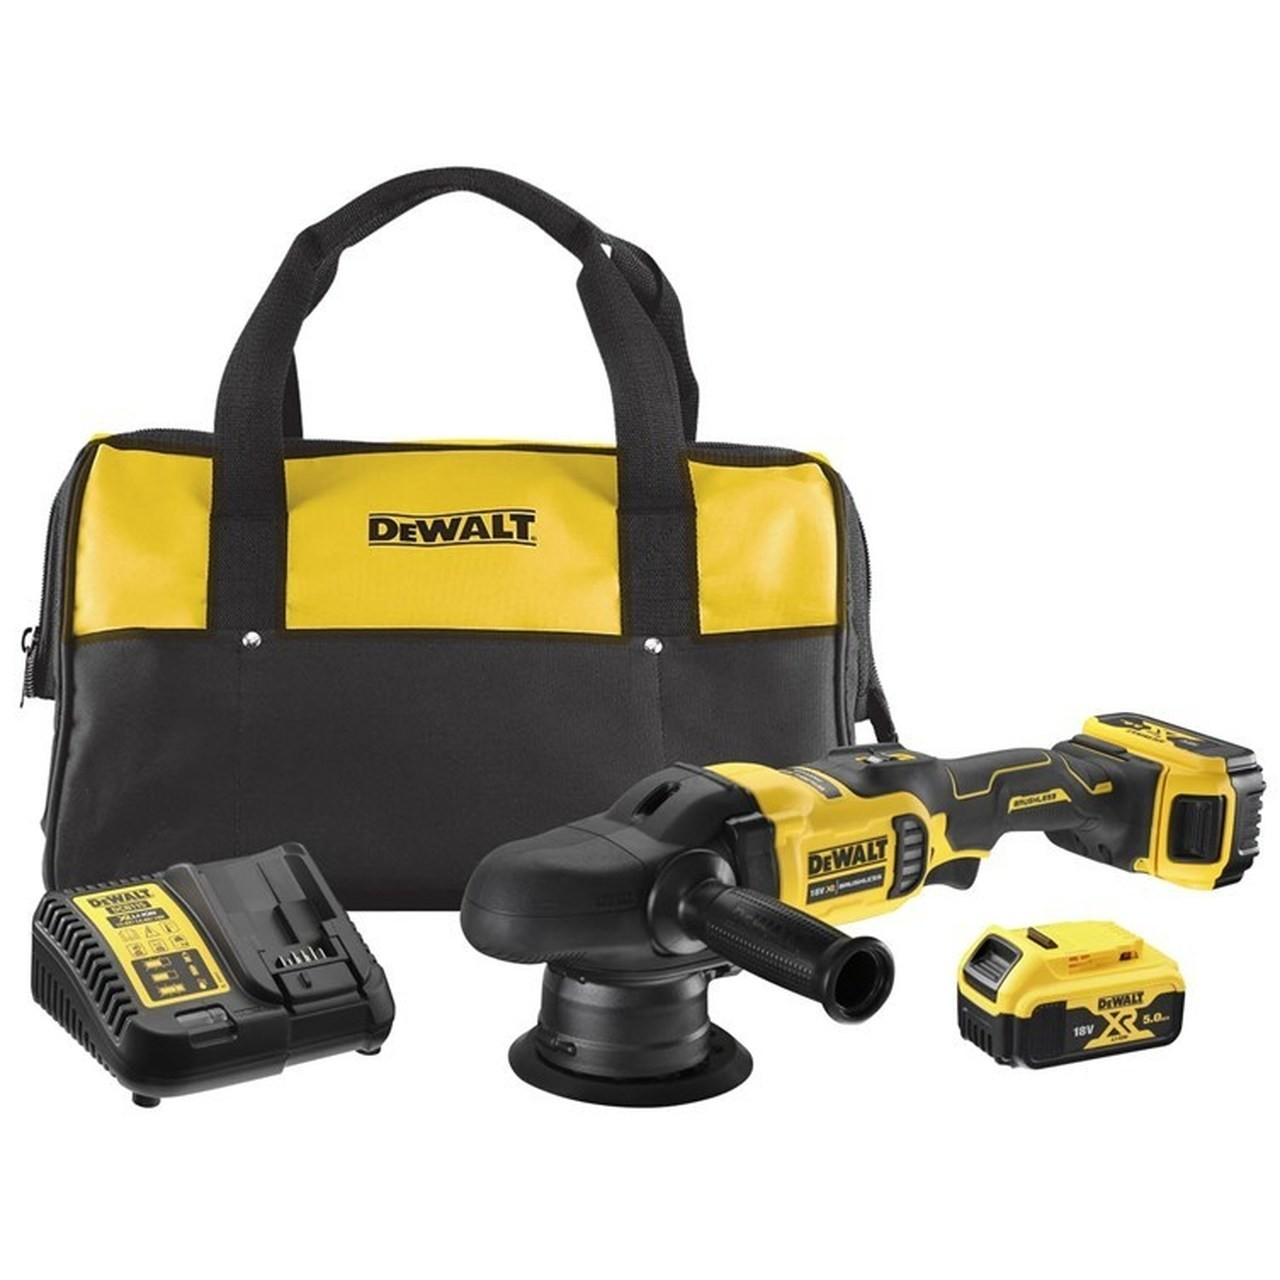 DEWALT DCM848P2 18v Brushless Dual Action Polisher 2x5ah batteries